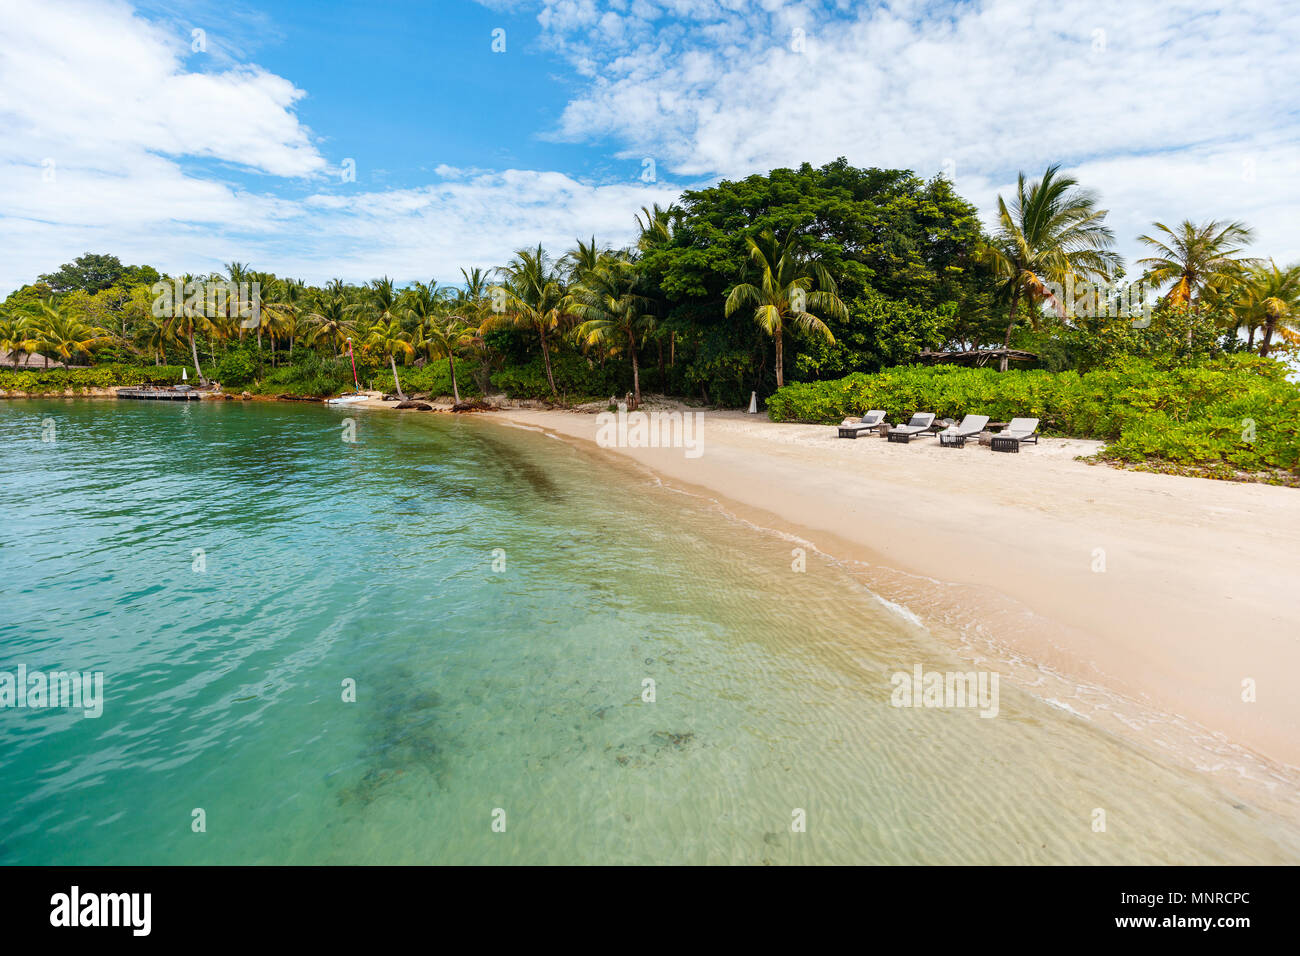 Idyllic tropical island and turquoise ocean water - Stock Image